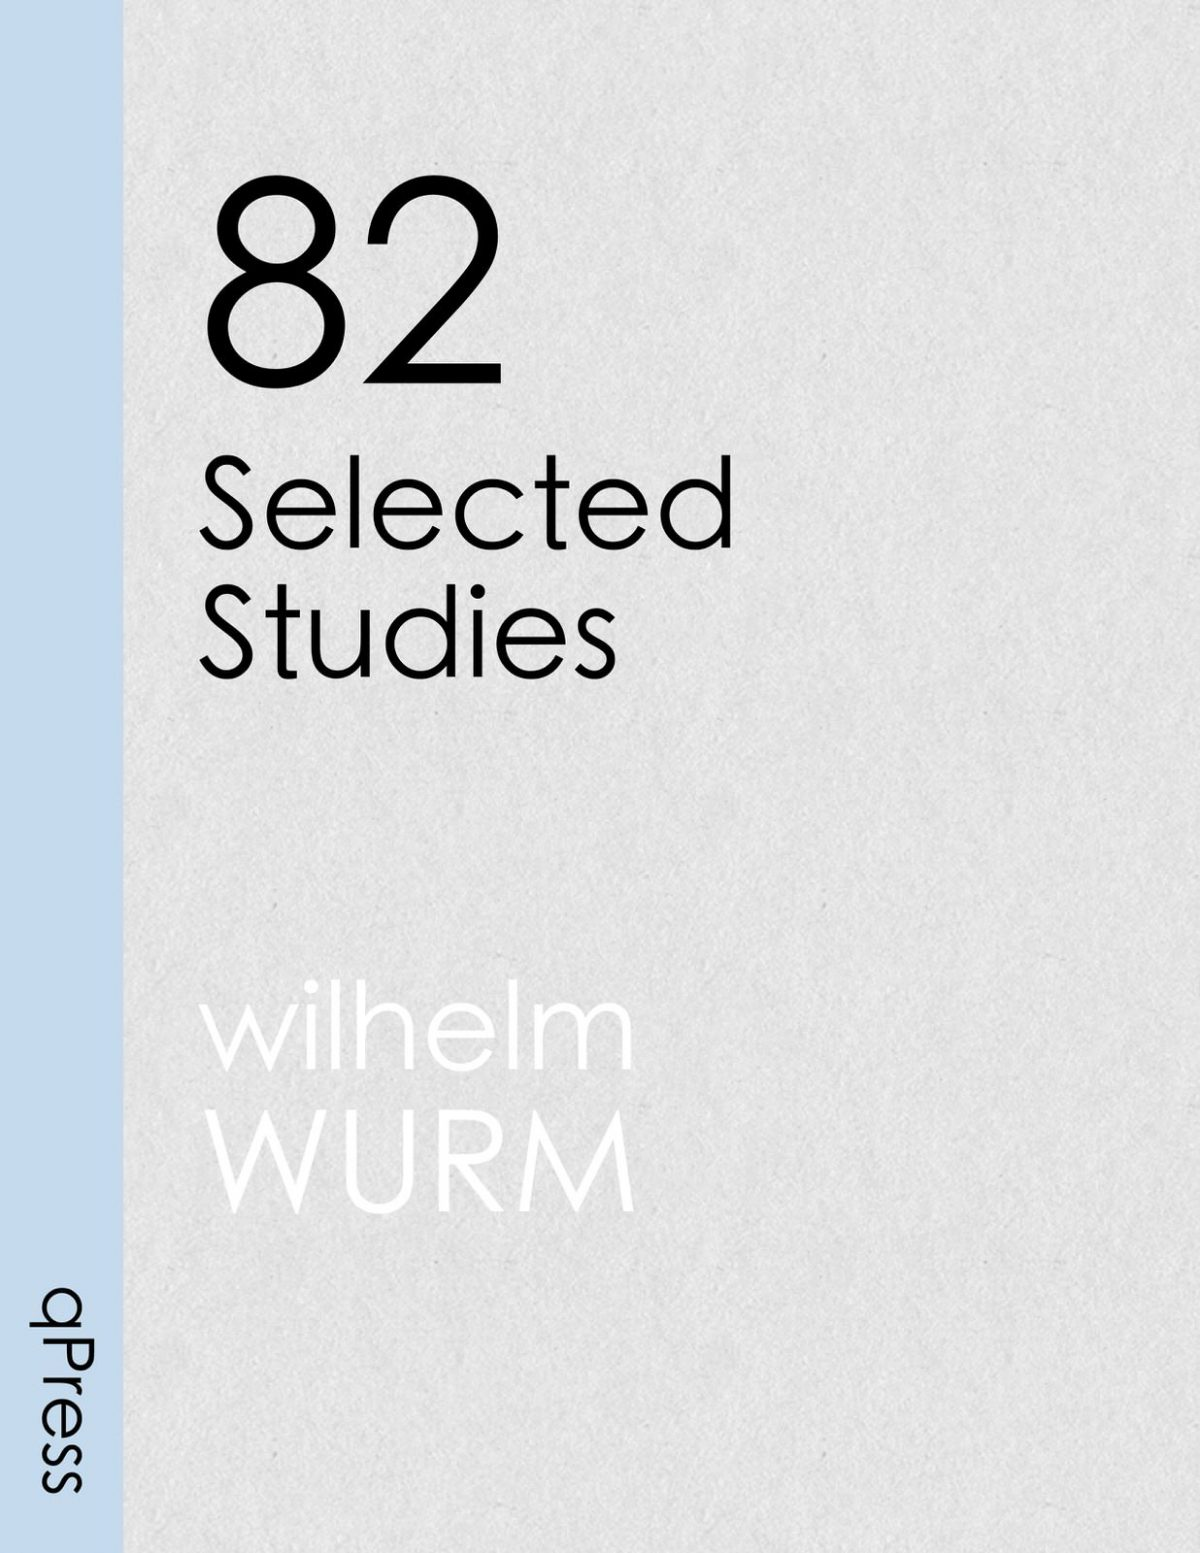 Wurm, 82 Selected Studies-p01